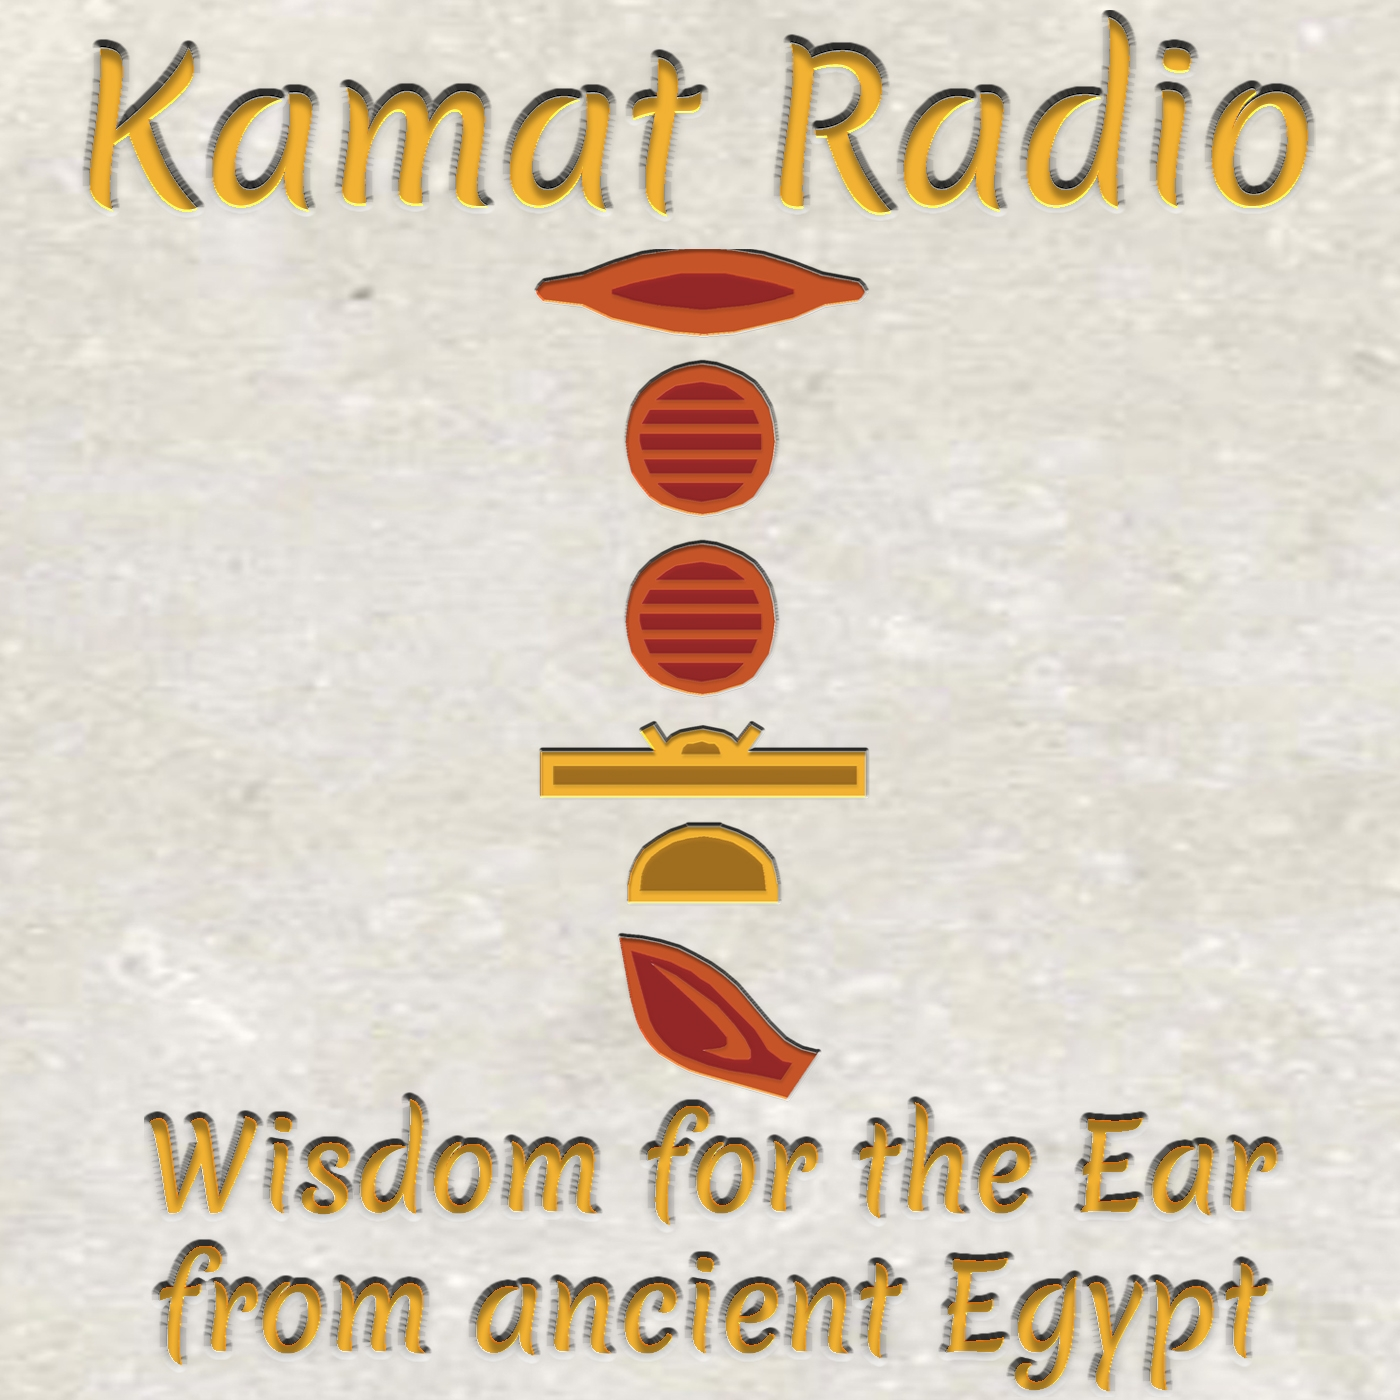 Kamat Radio - Wisdom for the Ear from Ancient Egypt